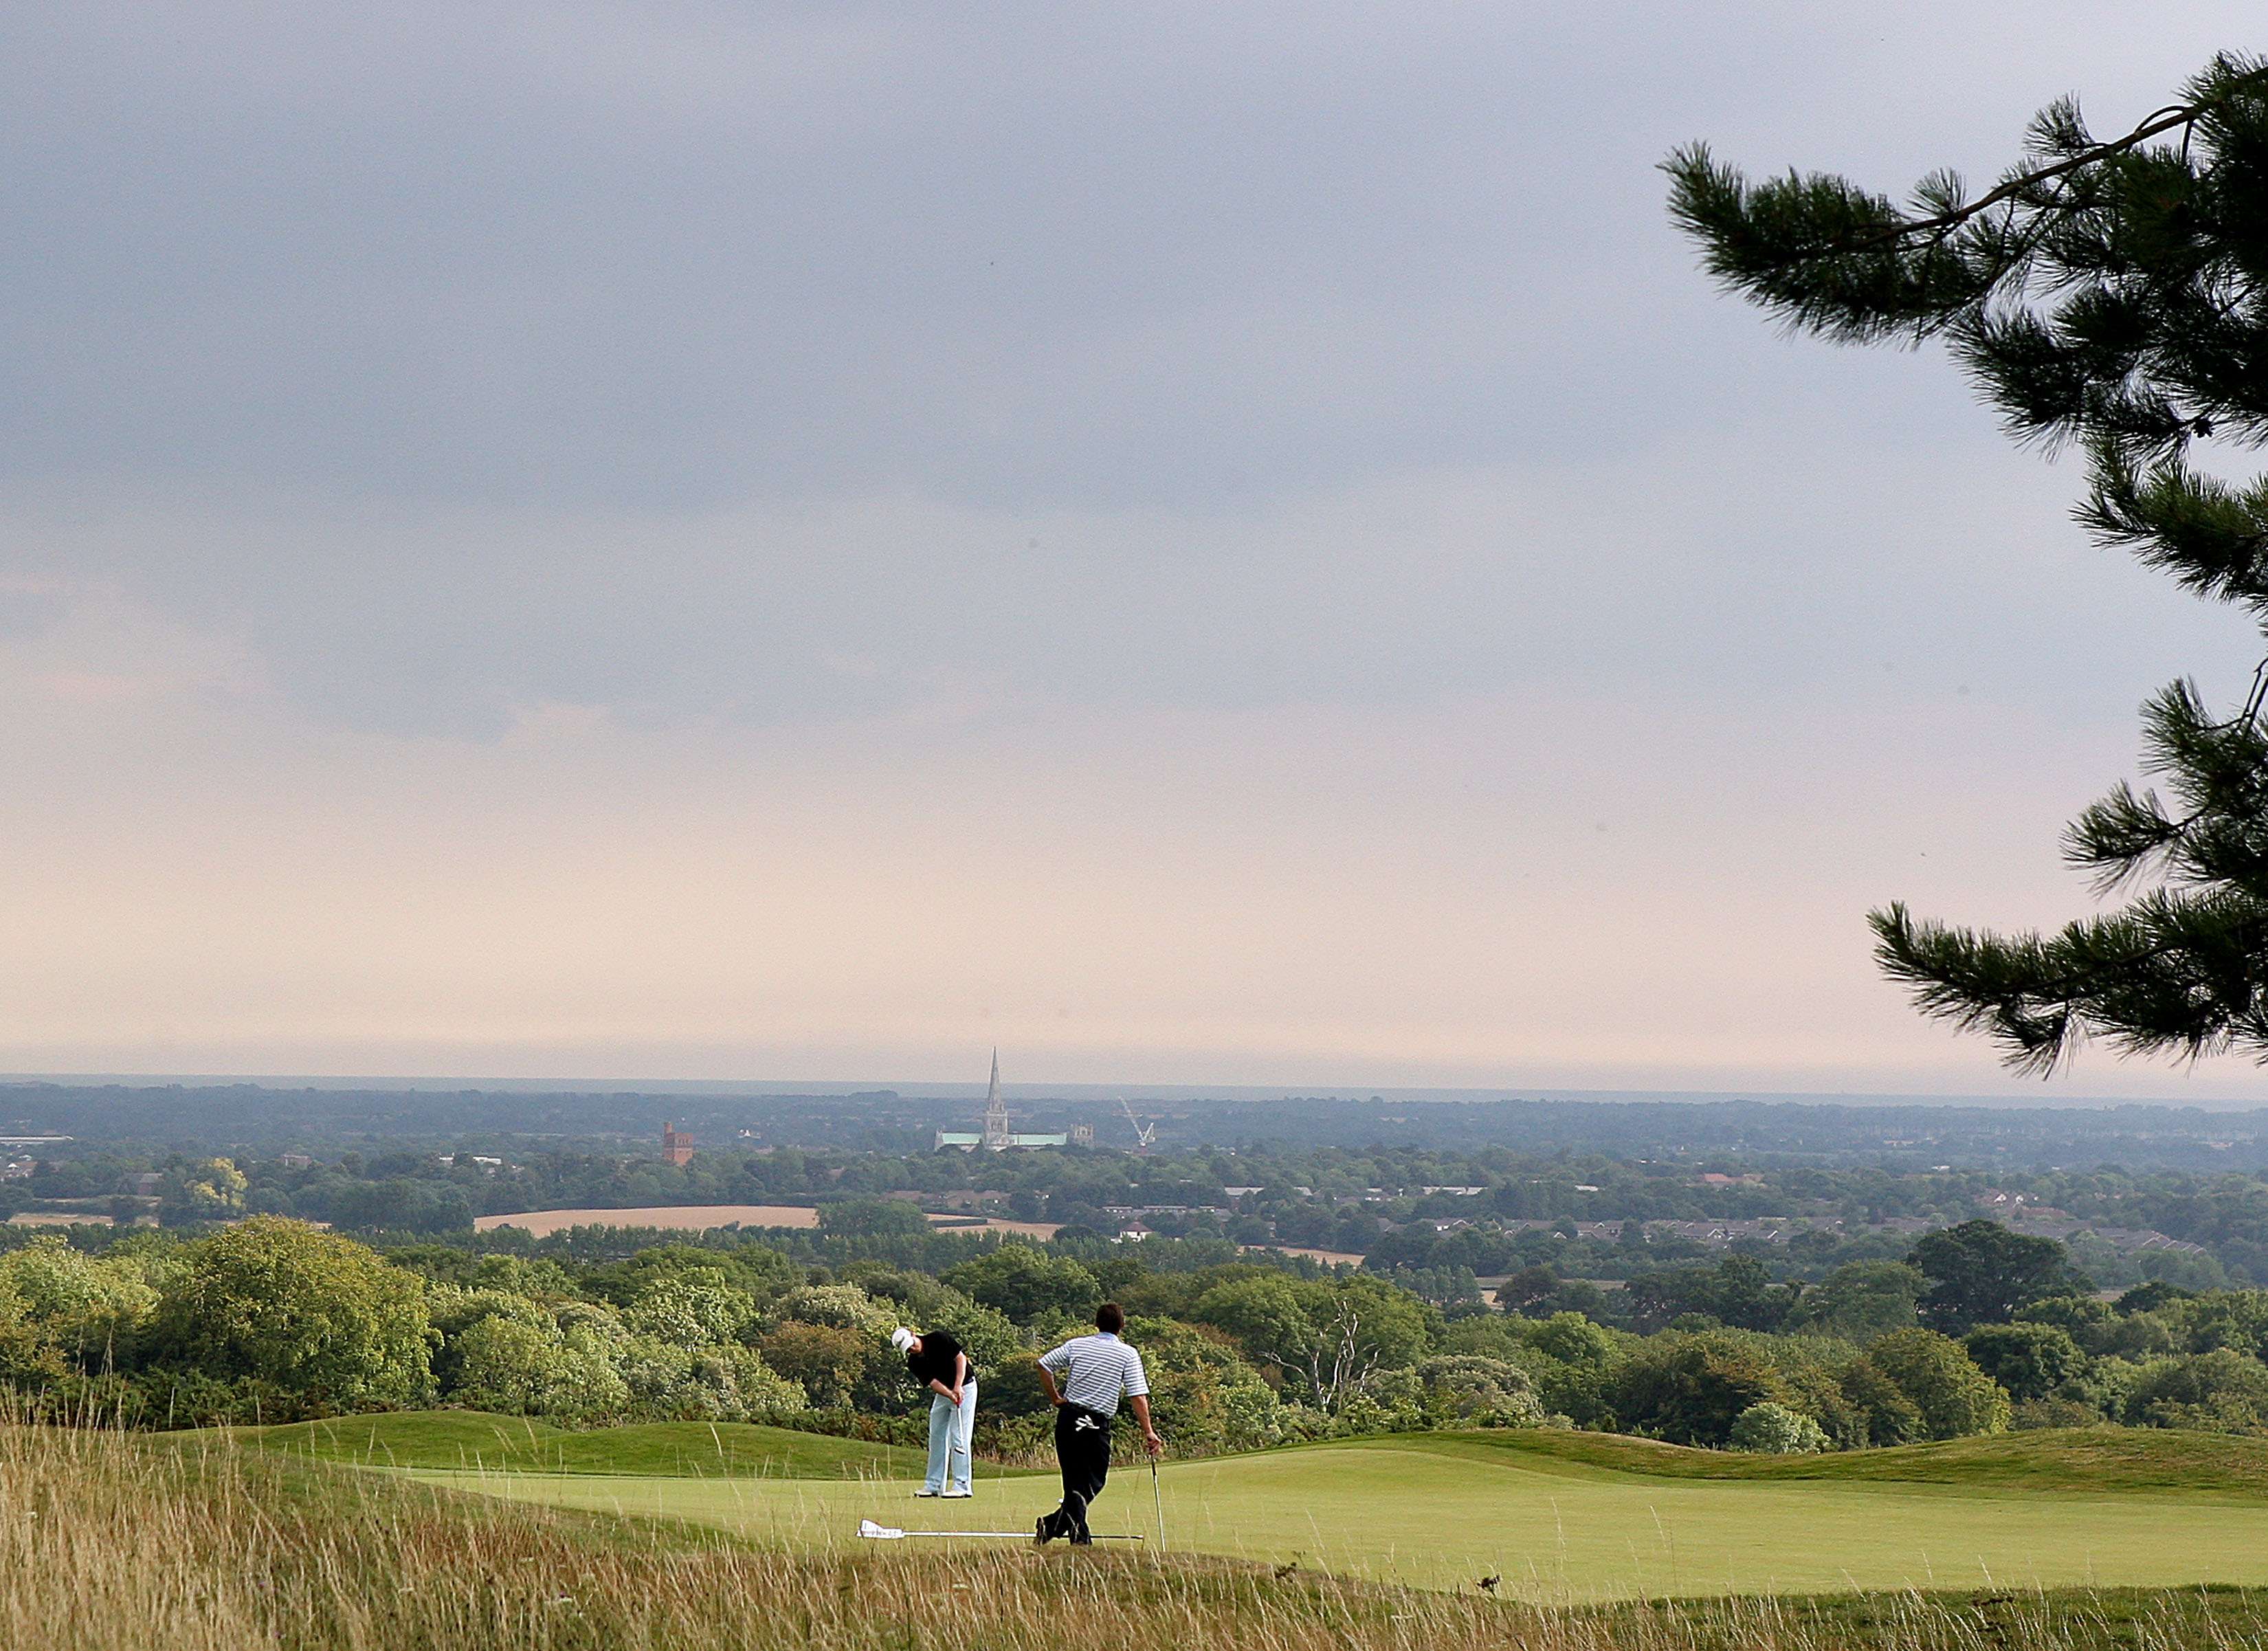 Goodwood's Downs course offers spectacular views over Chichester and the Solent (Photo: Getty)